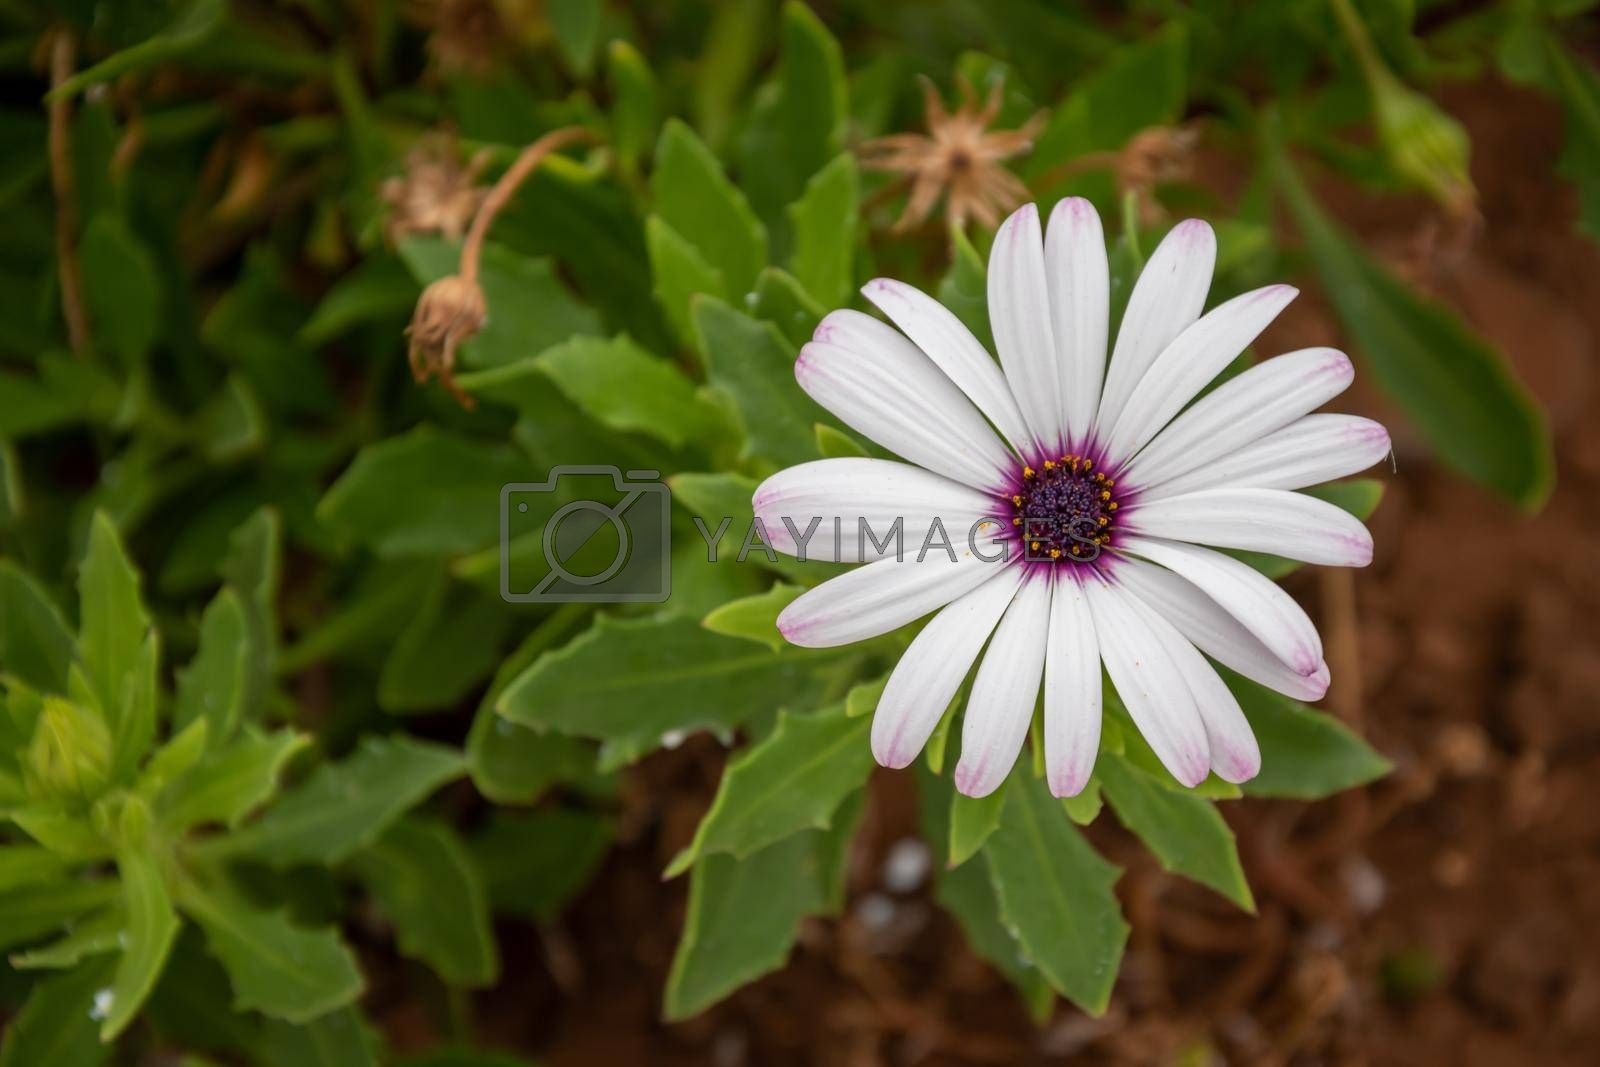 High angle shot of a daisy blooming in the greene